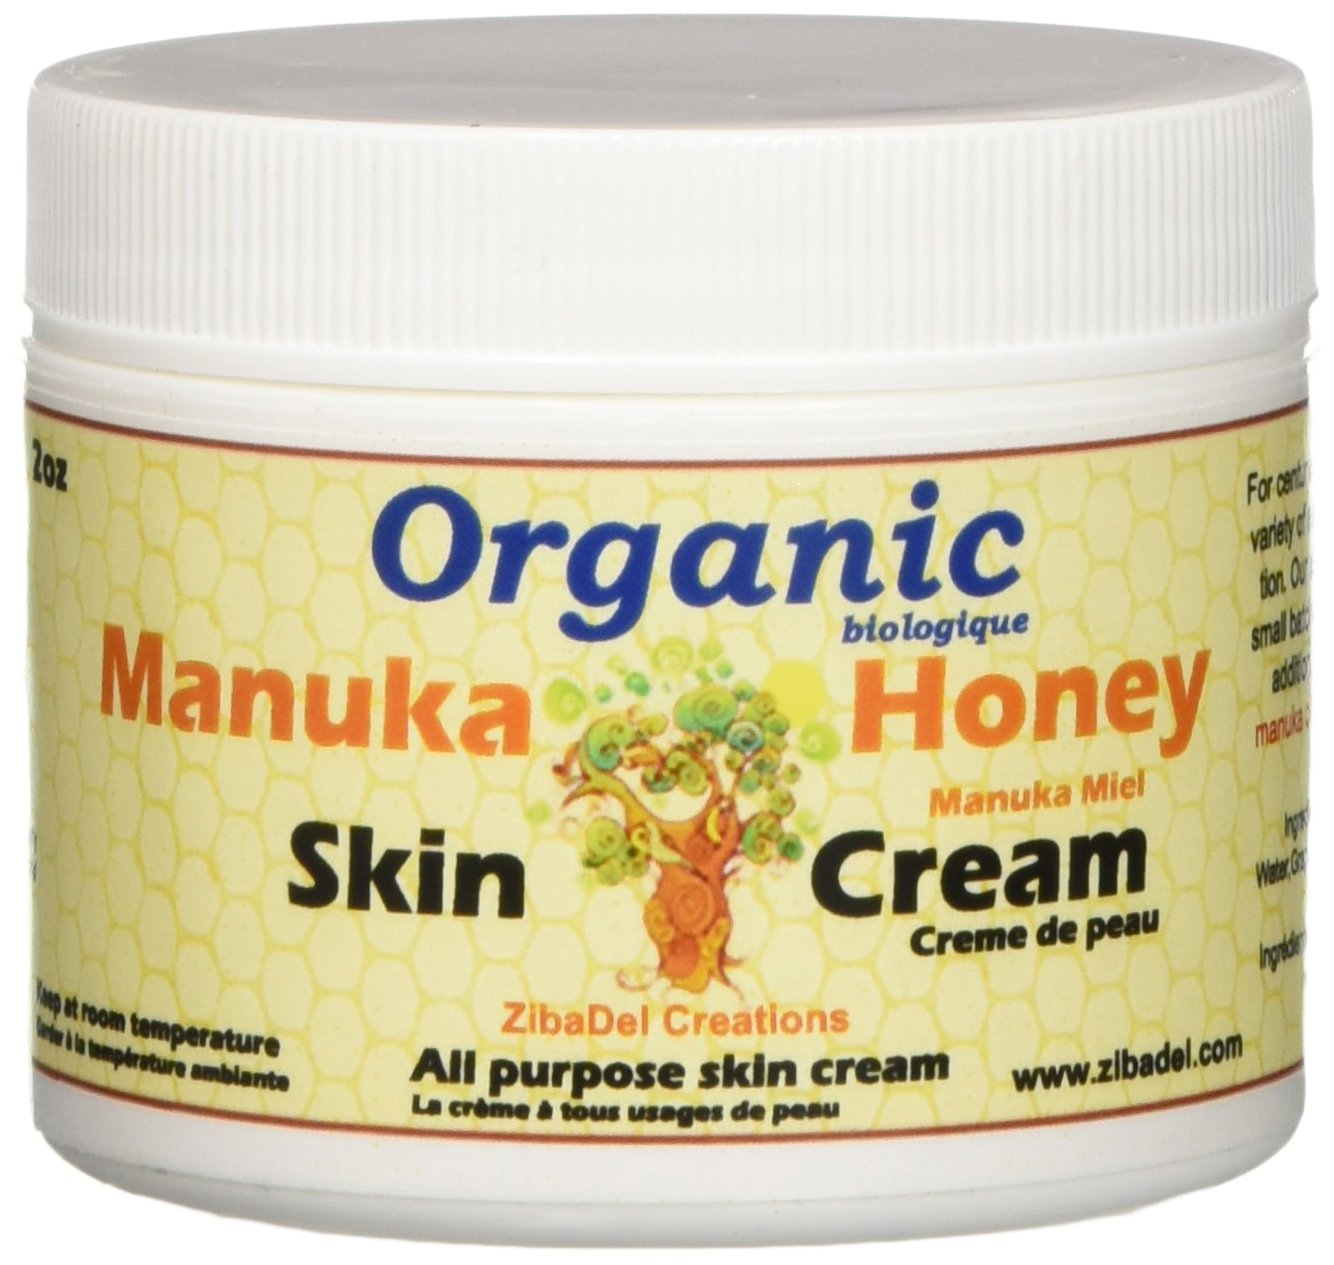 Organic Manuka Honey Intense Moisture Skin Baby Cream